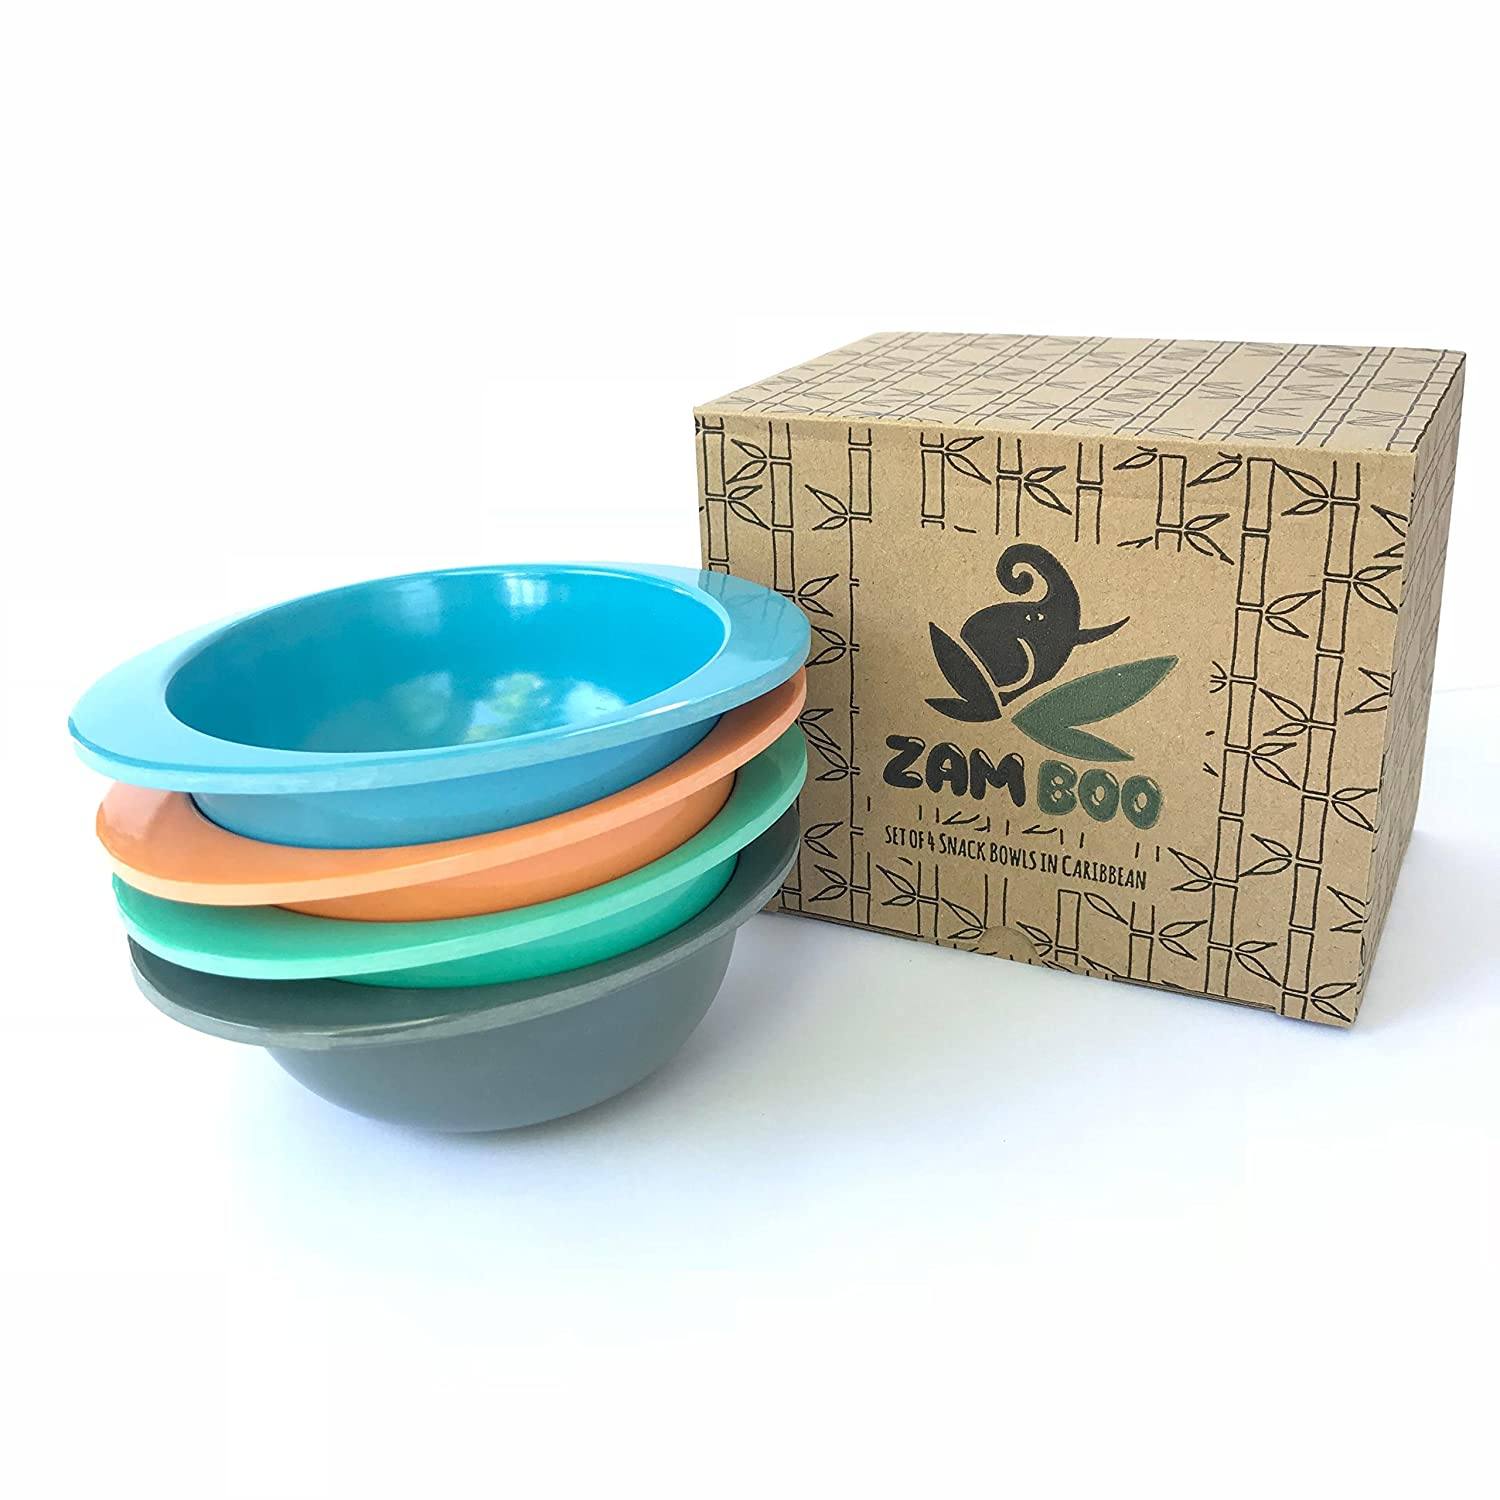 Zamboo Small Bowls for Kids - Made from Eco Friendly Bamboo Fiber - Best for Snacks, Breakfast, Lunch, or Dinner - Biodegradable Dinnerware for Children, Toddlers, and Babies - Blue Green Orange Gray Miyar